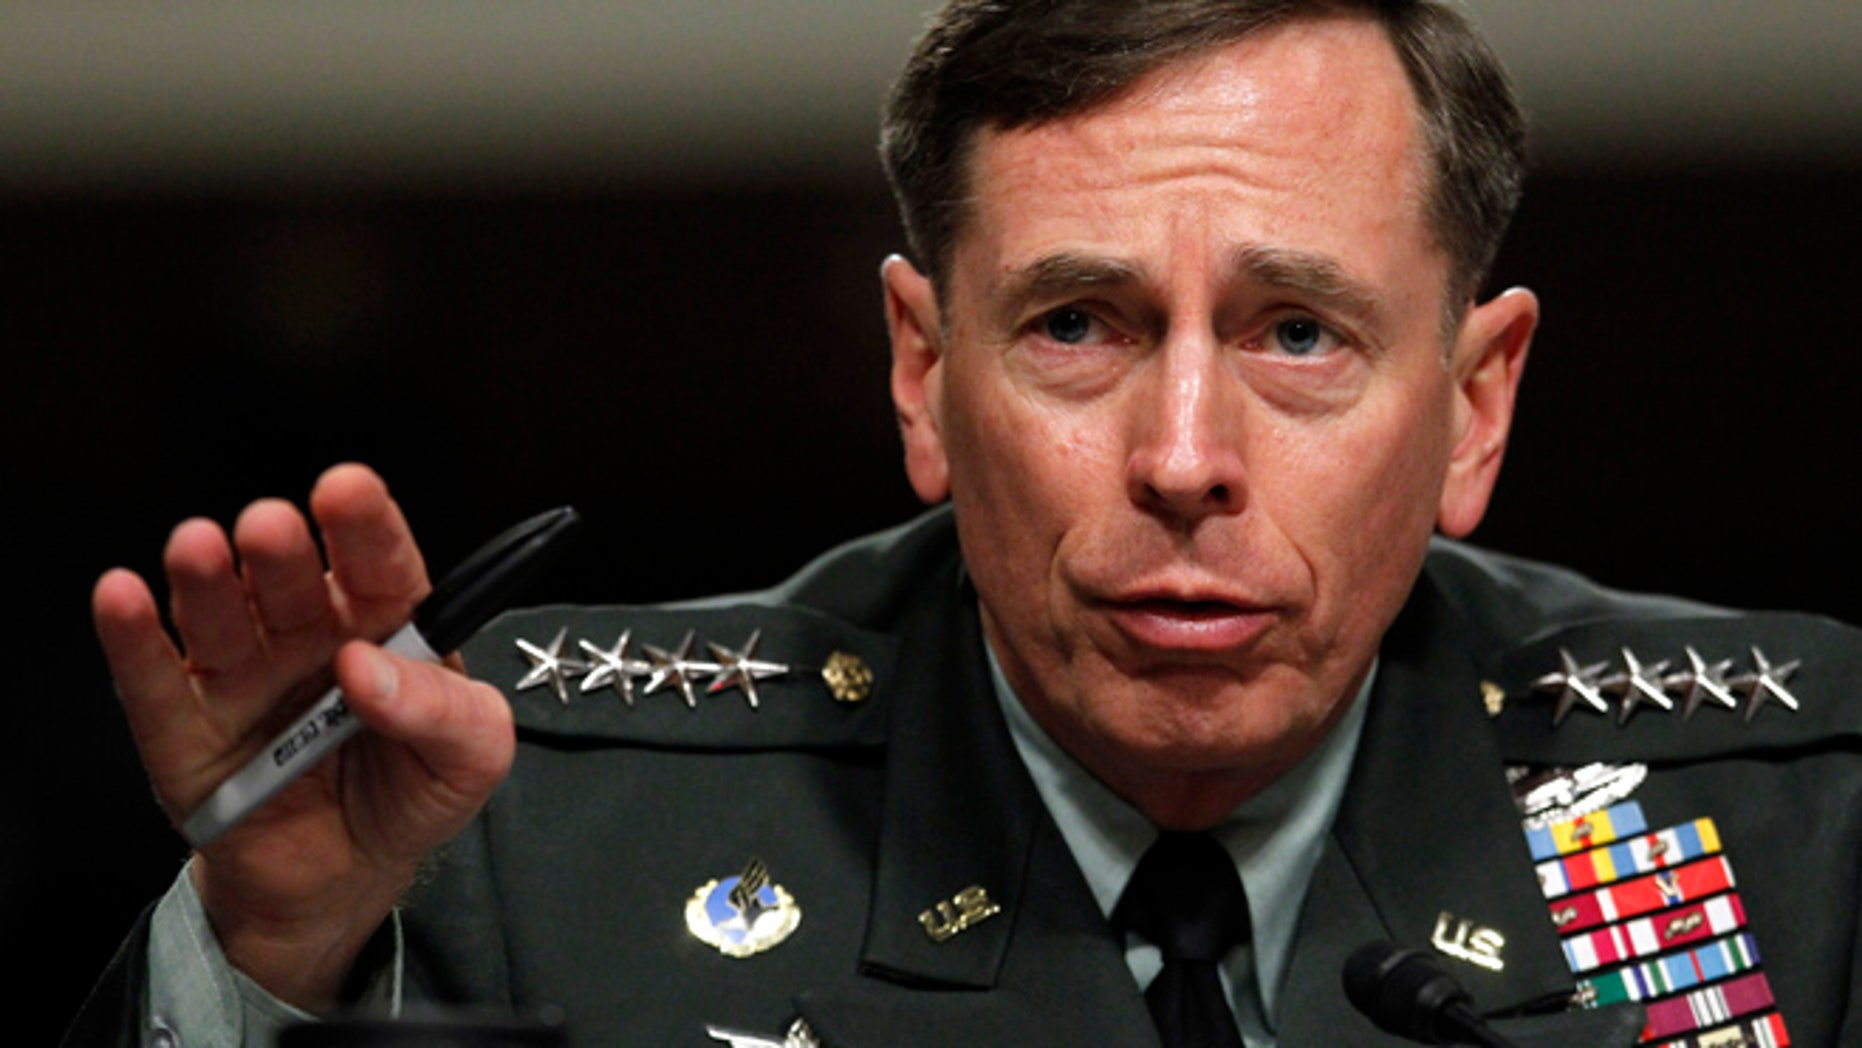 June 29, 2012: Gen. David Petraeus testifies before the Senate Armed Services Committee on Capitol Hill in Washington.